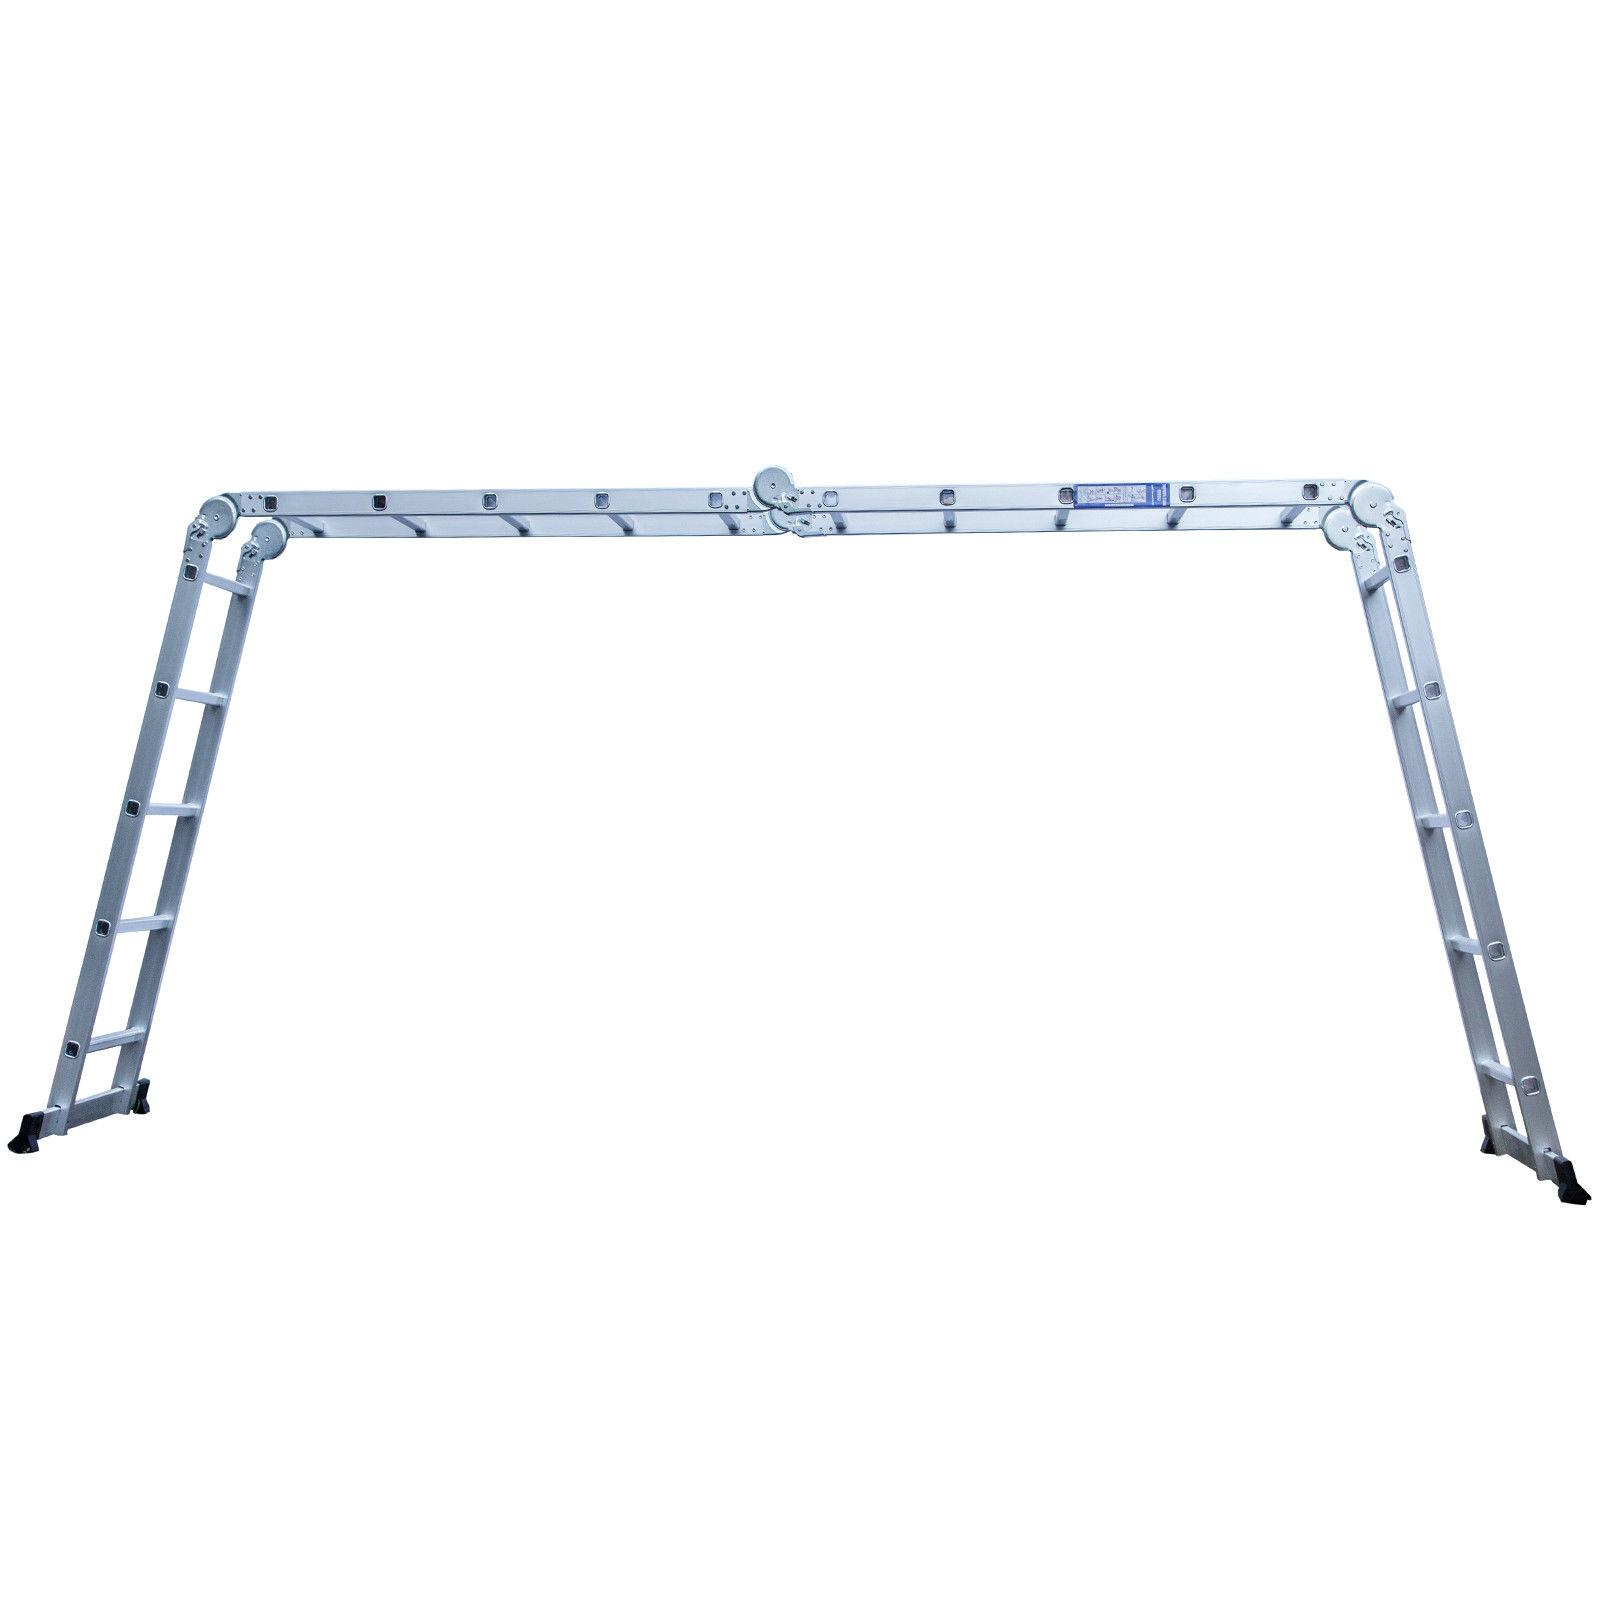 Ladder Folding Aluminum Multi-Function